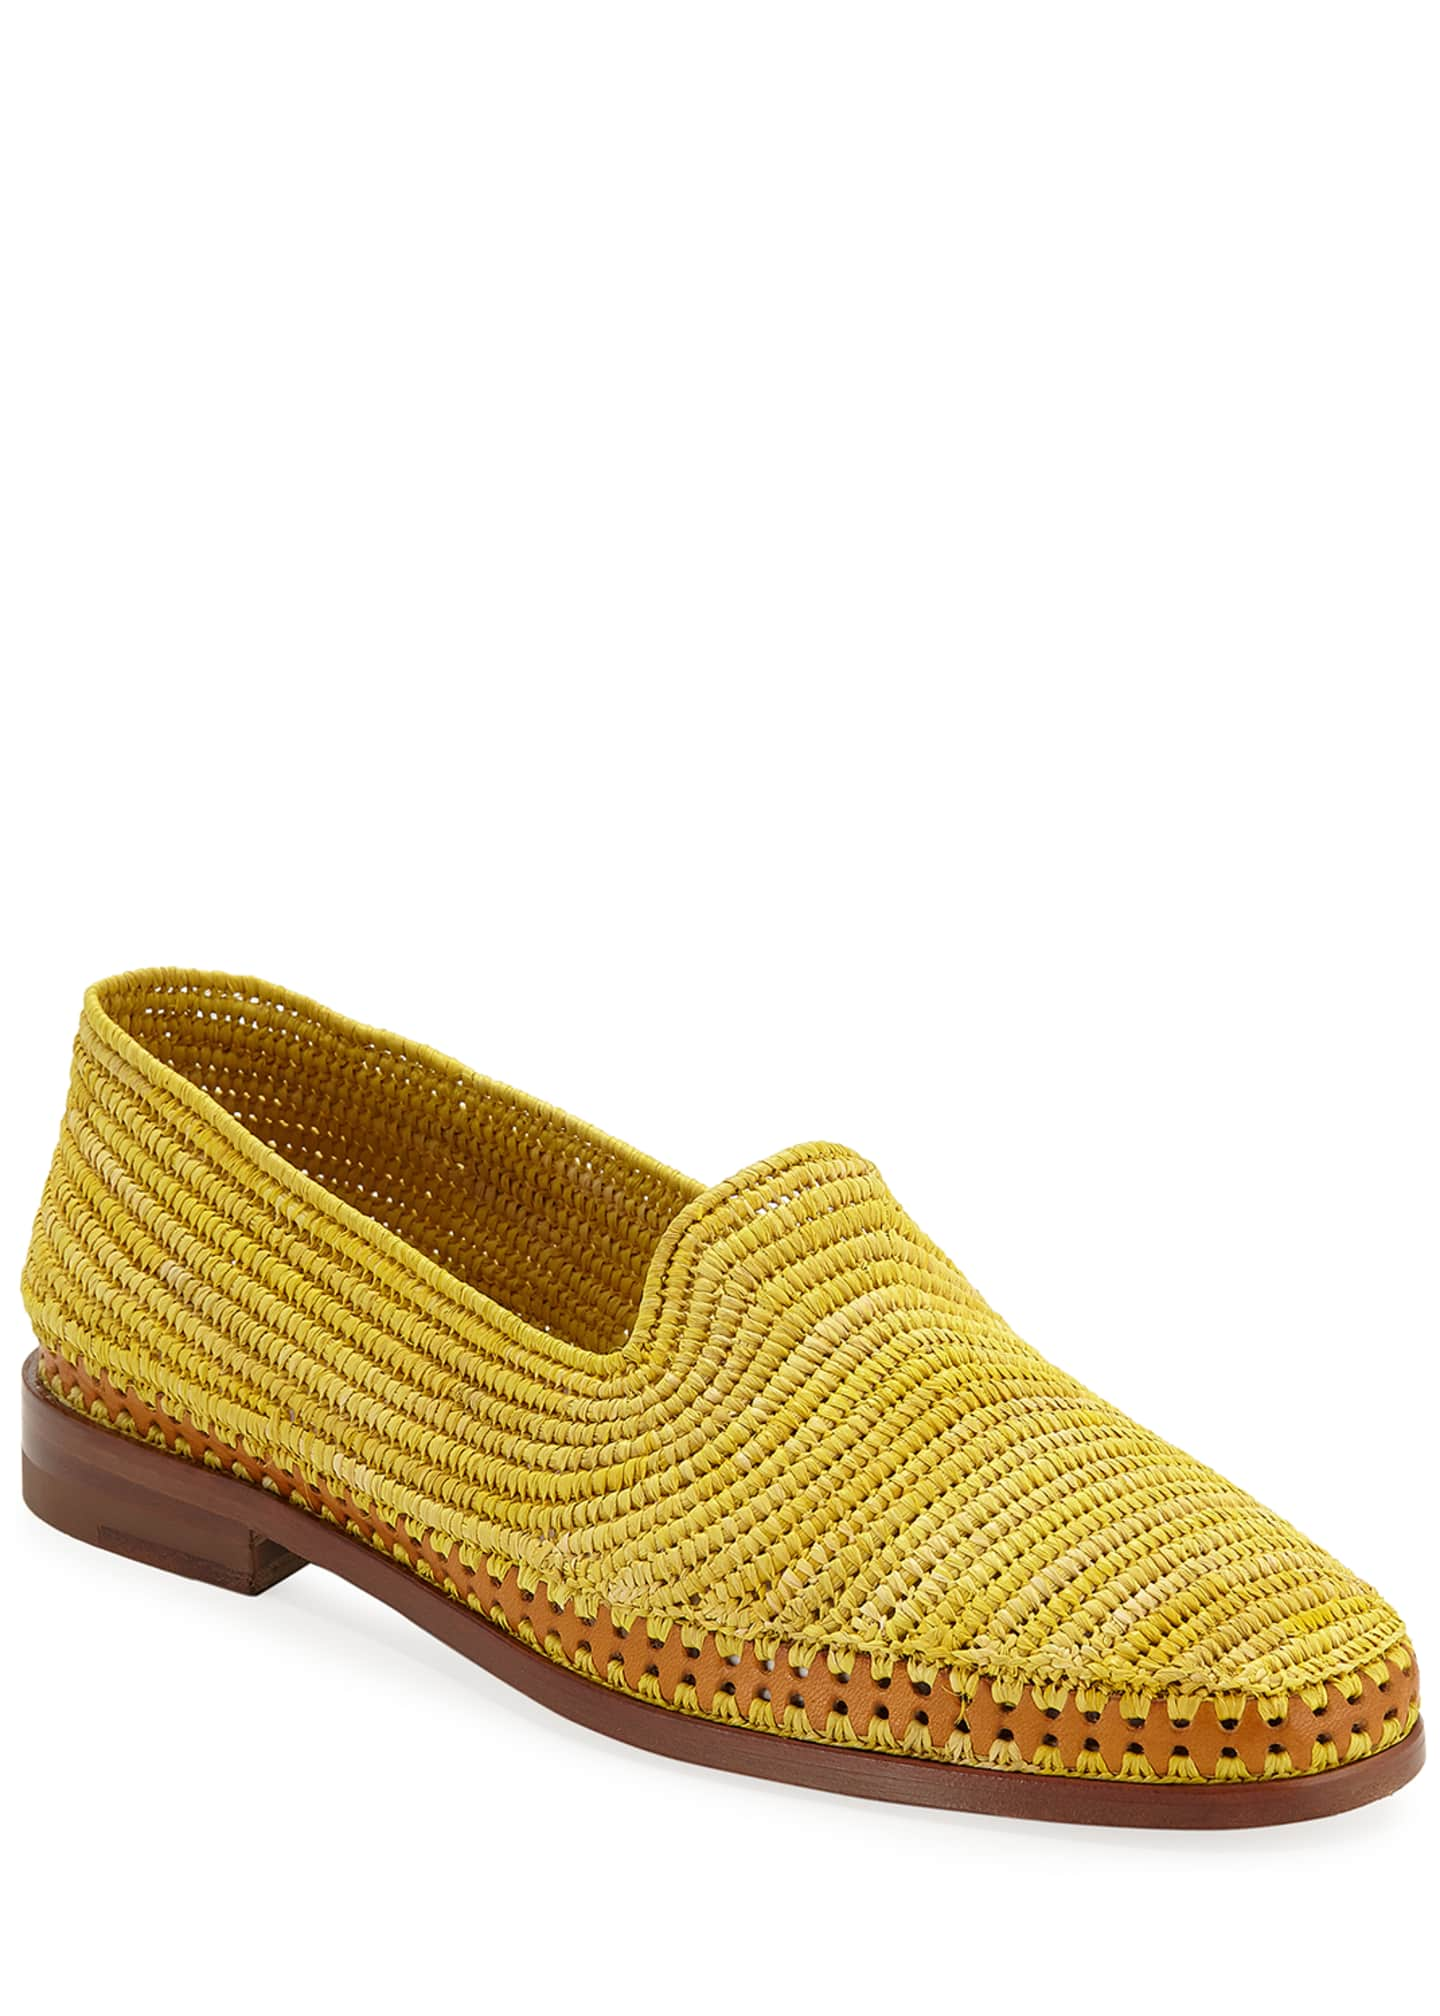 Manolo Blahnik Amira Woven Raffia Slip-On Loafers